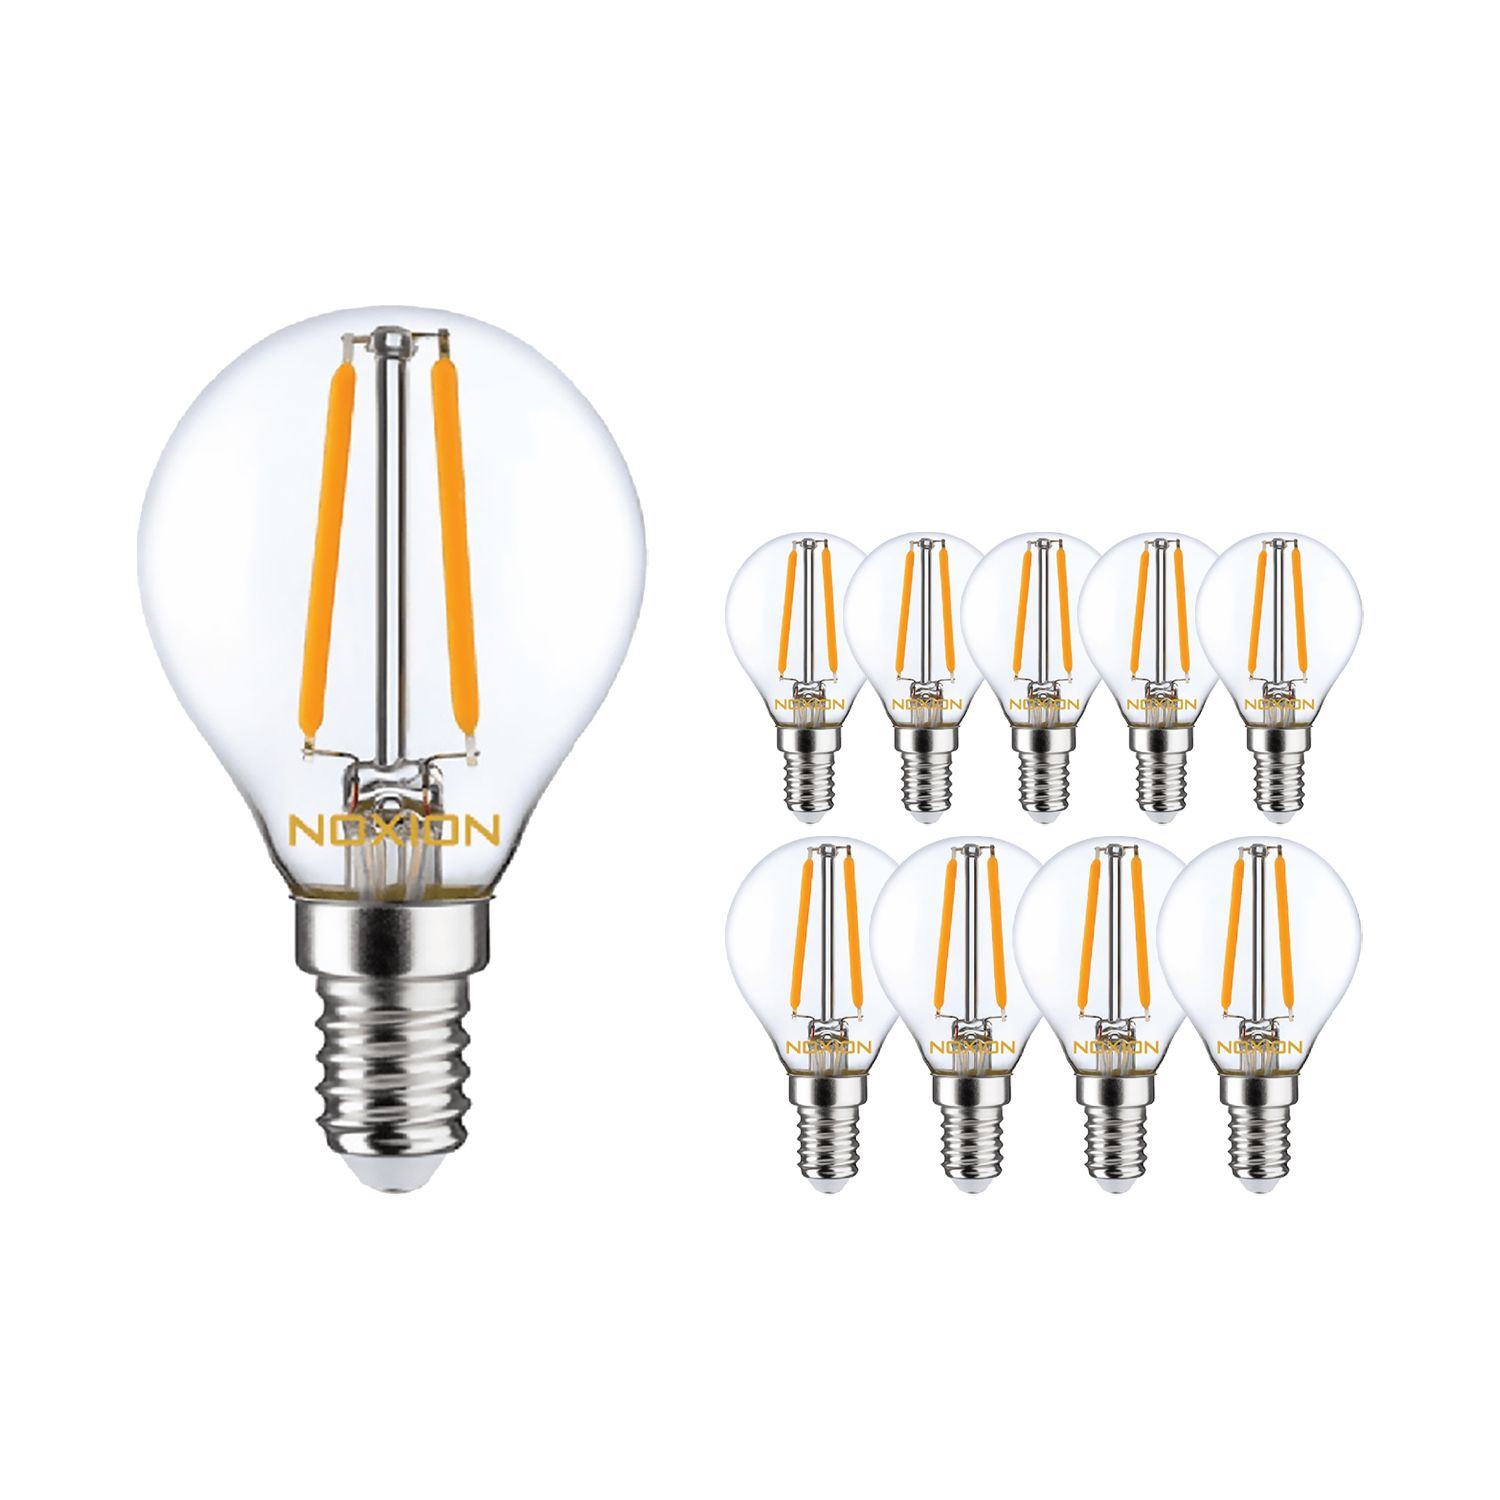 Multipack 10x Noxion Lucent Filament LED Lustre 4.5W 827 P45 E14 Clear | Replacer for 40W